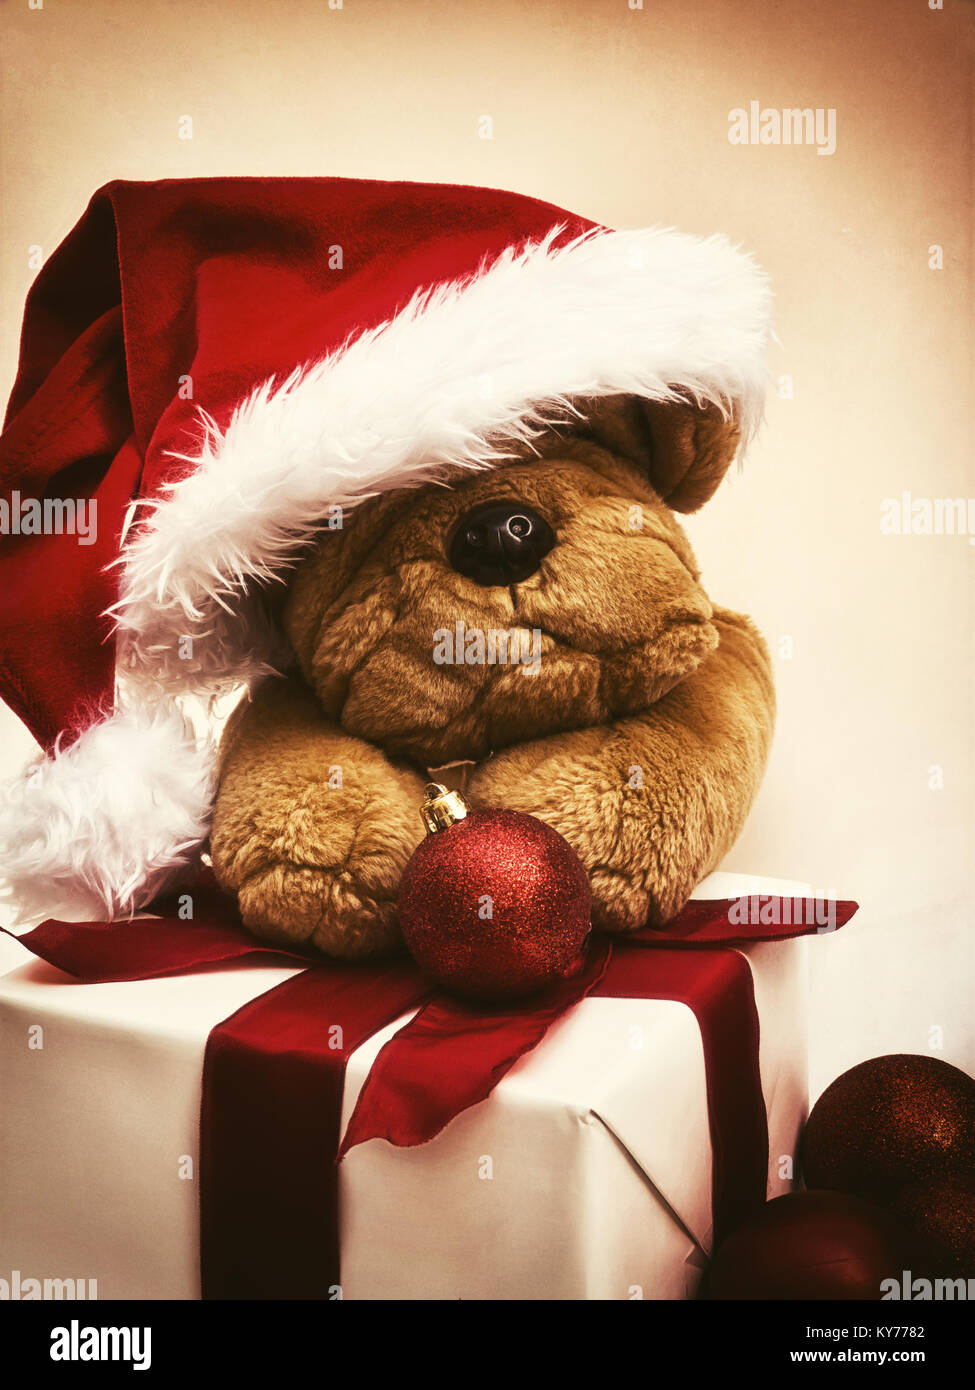 Christmas teddy bear with santa hat and present - Stock Image